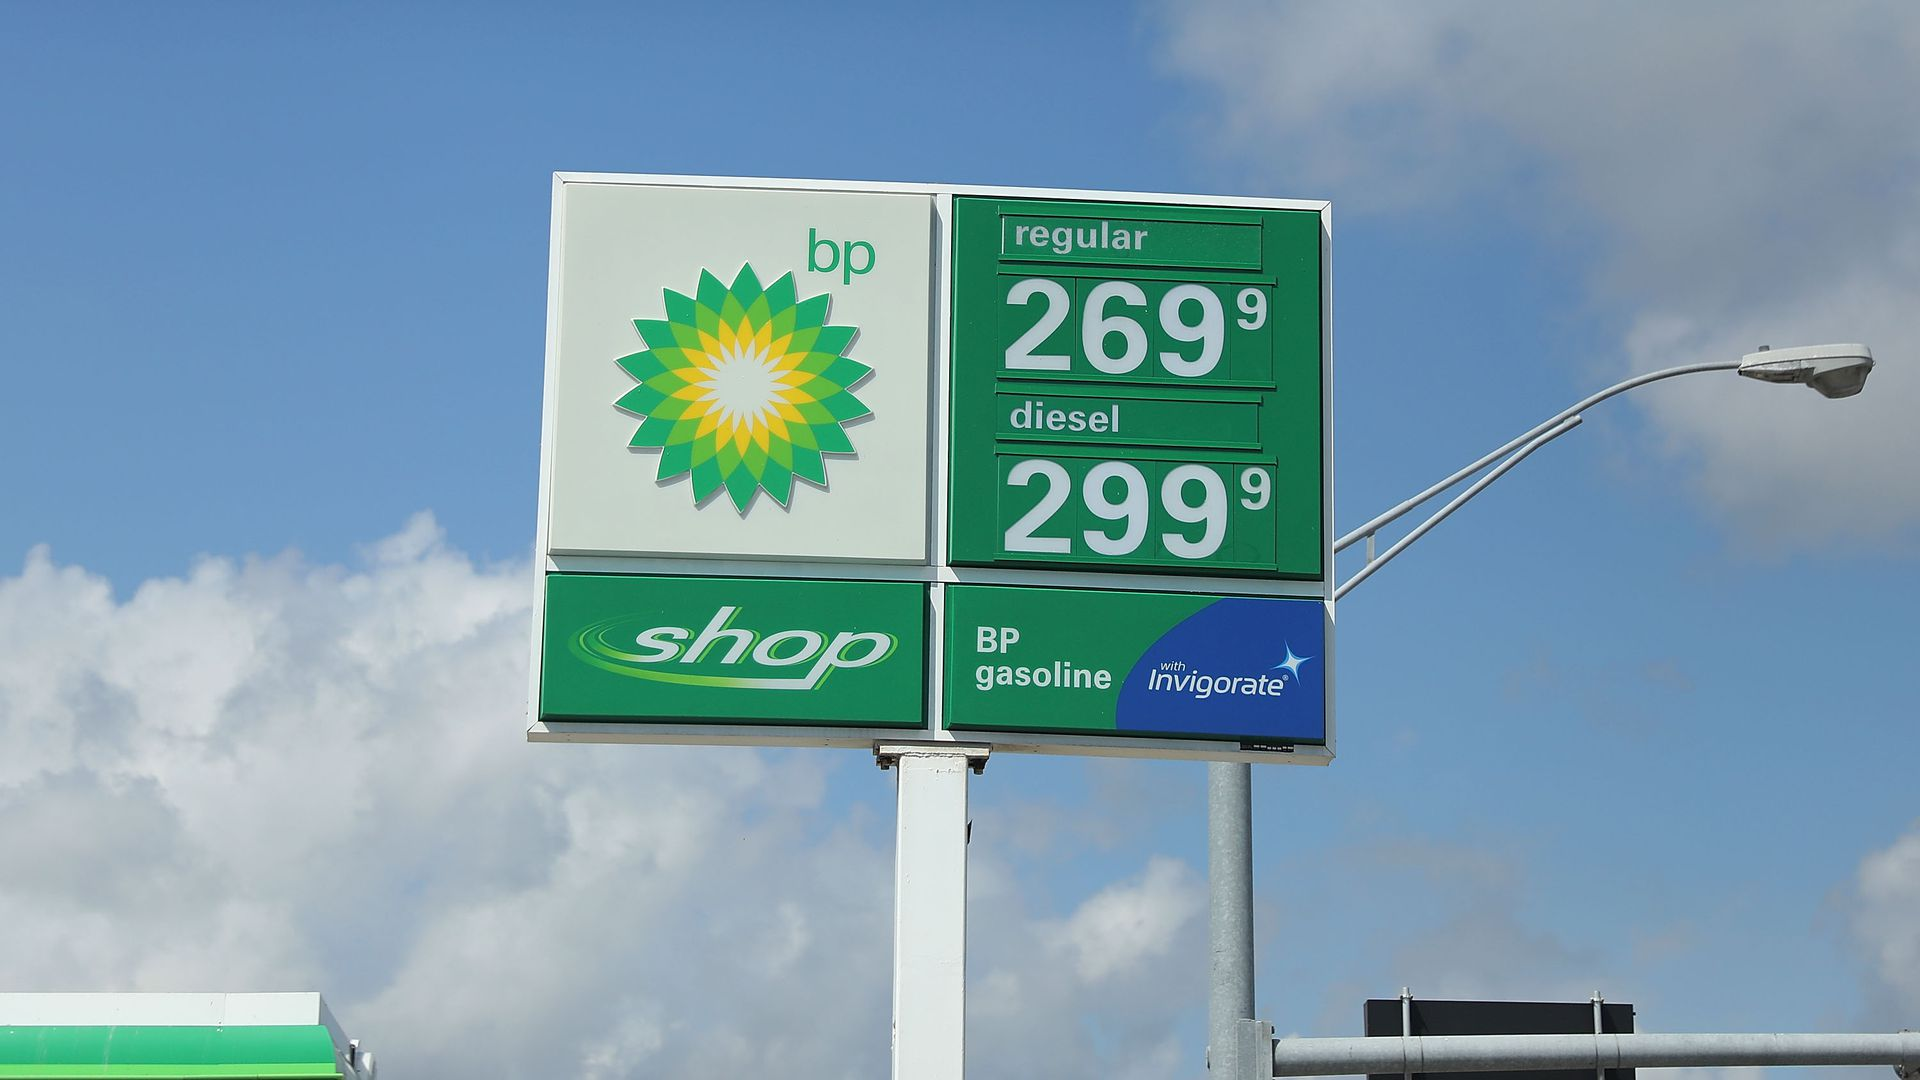 A sign showing gas prices in 2014.